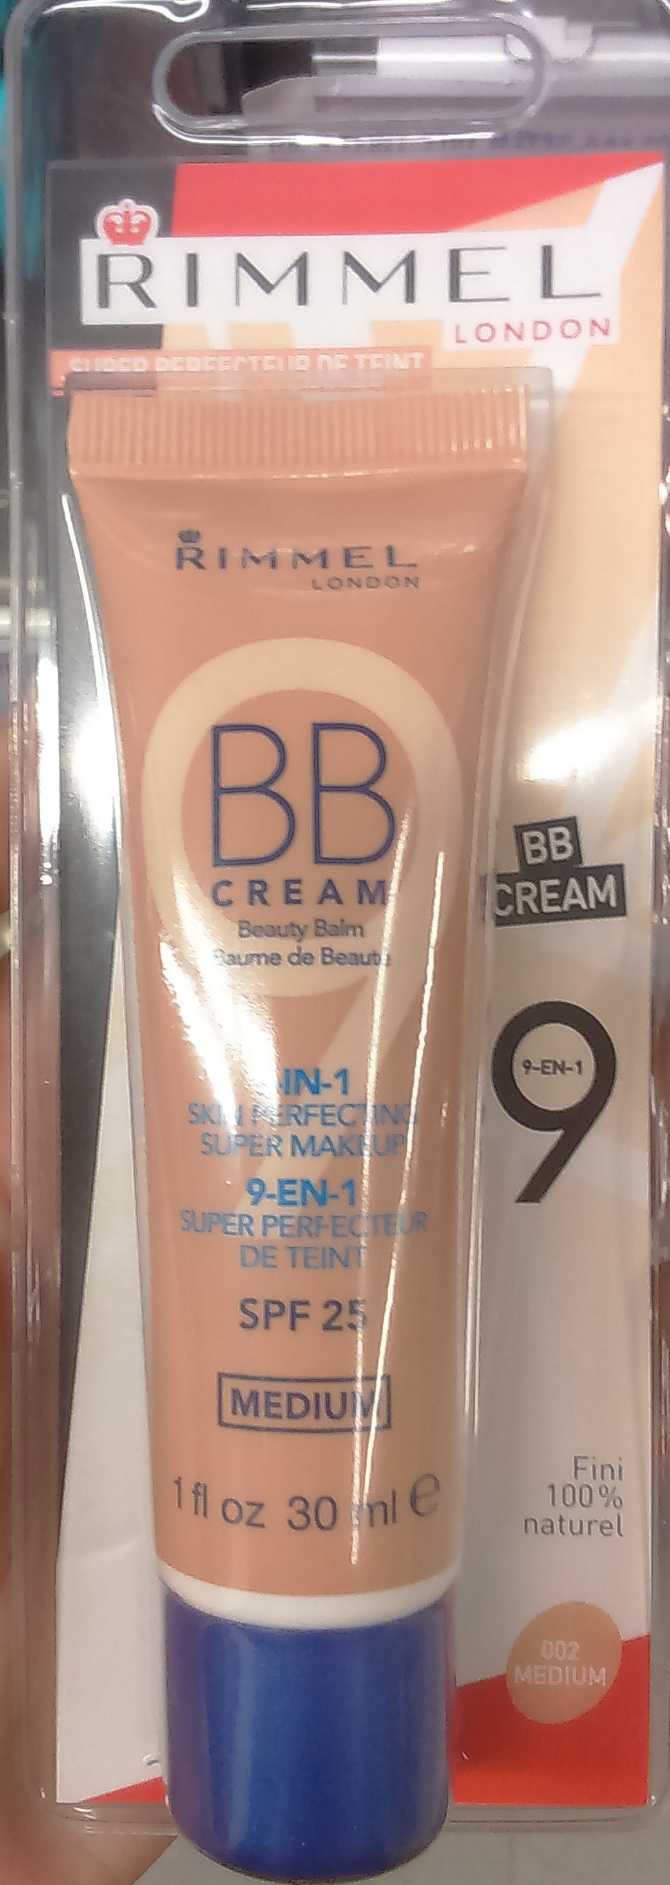 BB cream radiance 9 en 1 SPF 25 - 002 medium - Produit - fr